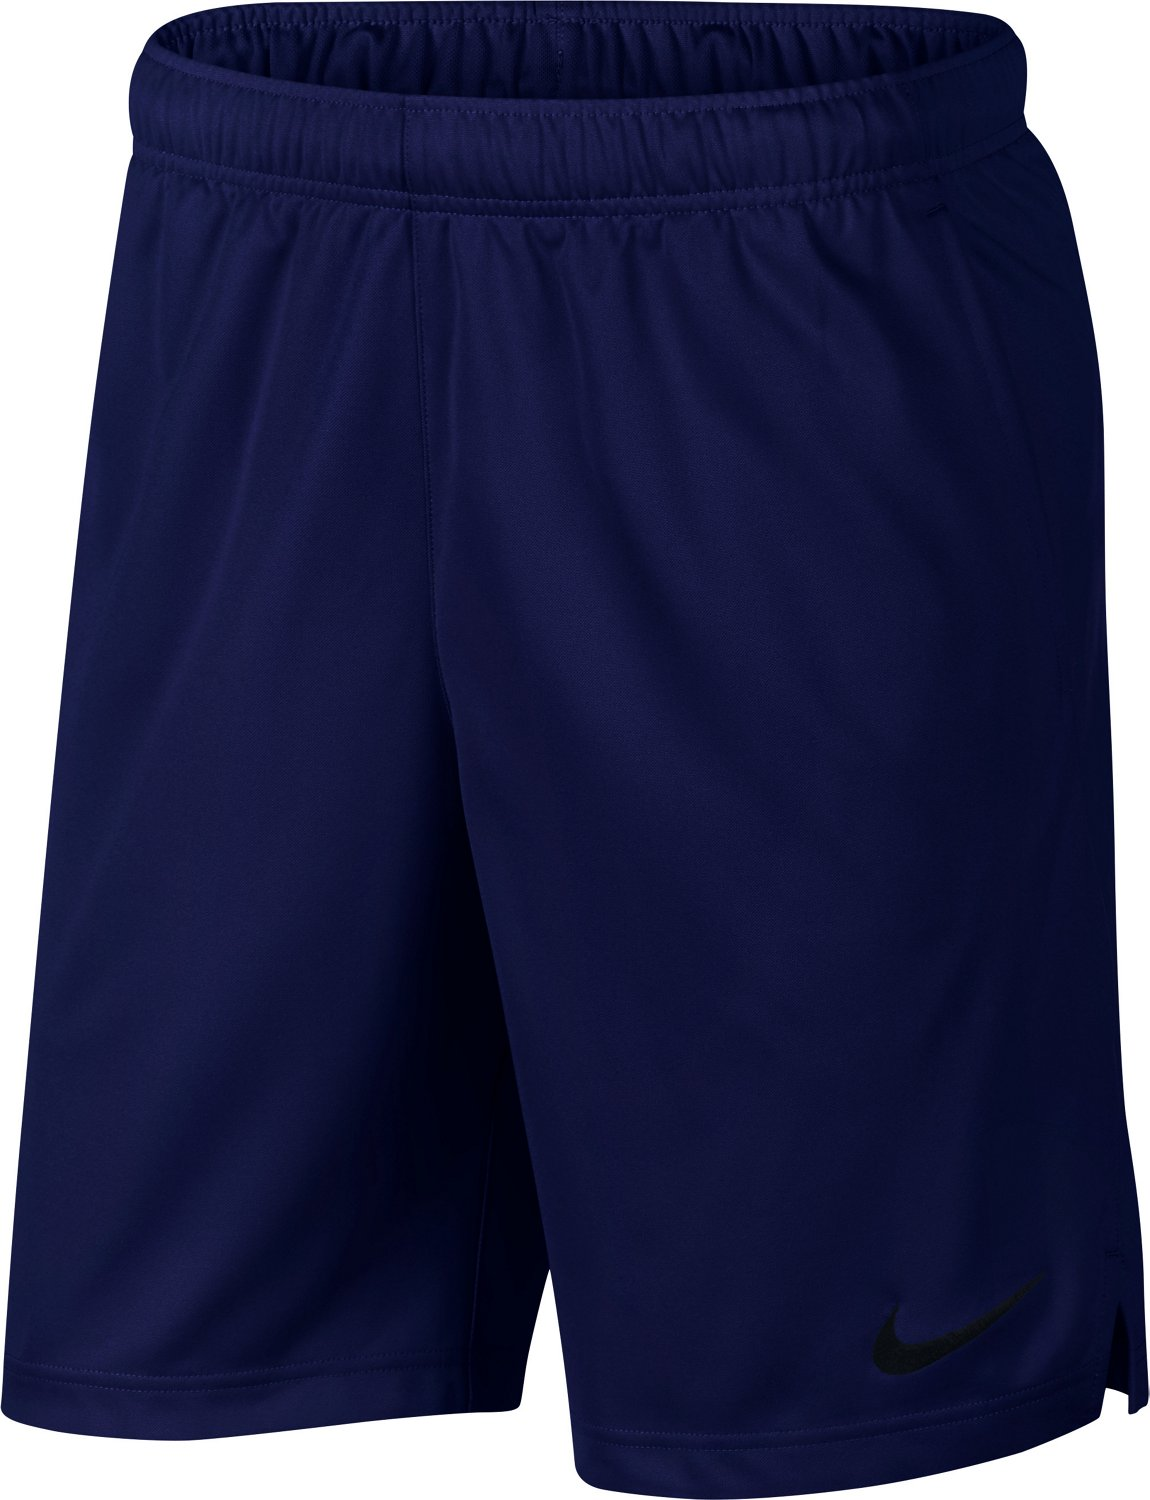 Clothing, Shoes & Accessories Nike Shorts Suitable For Men And Women Of All Ages In All Seasons